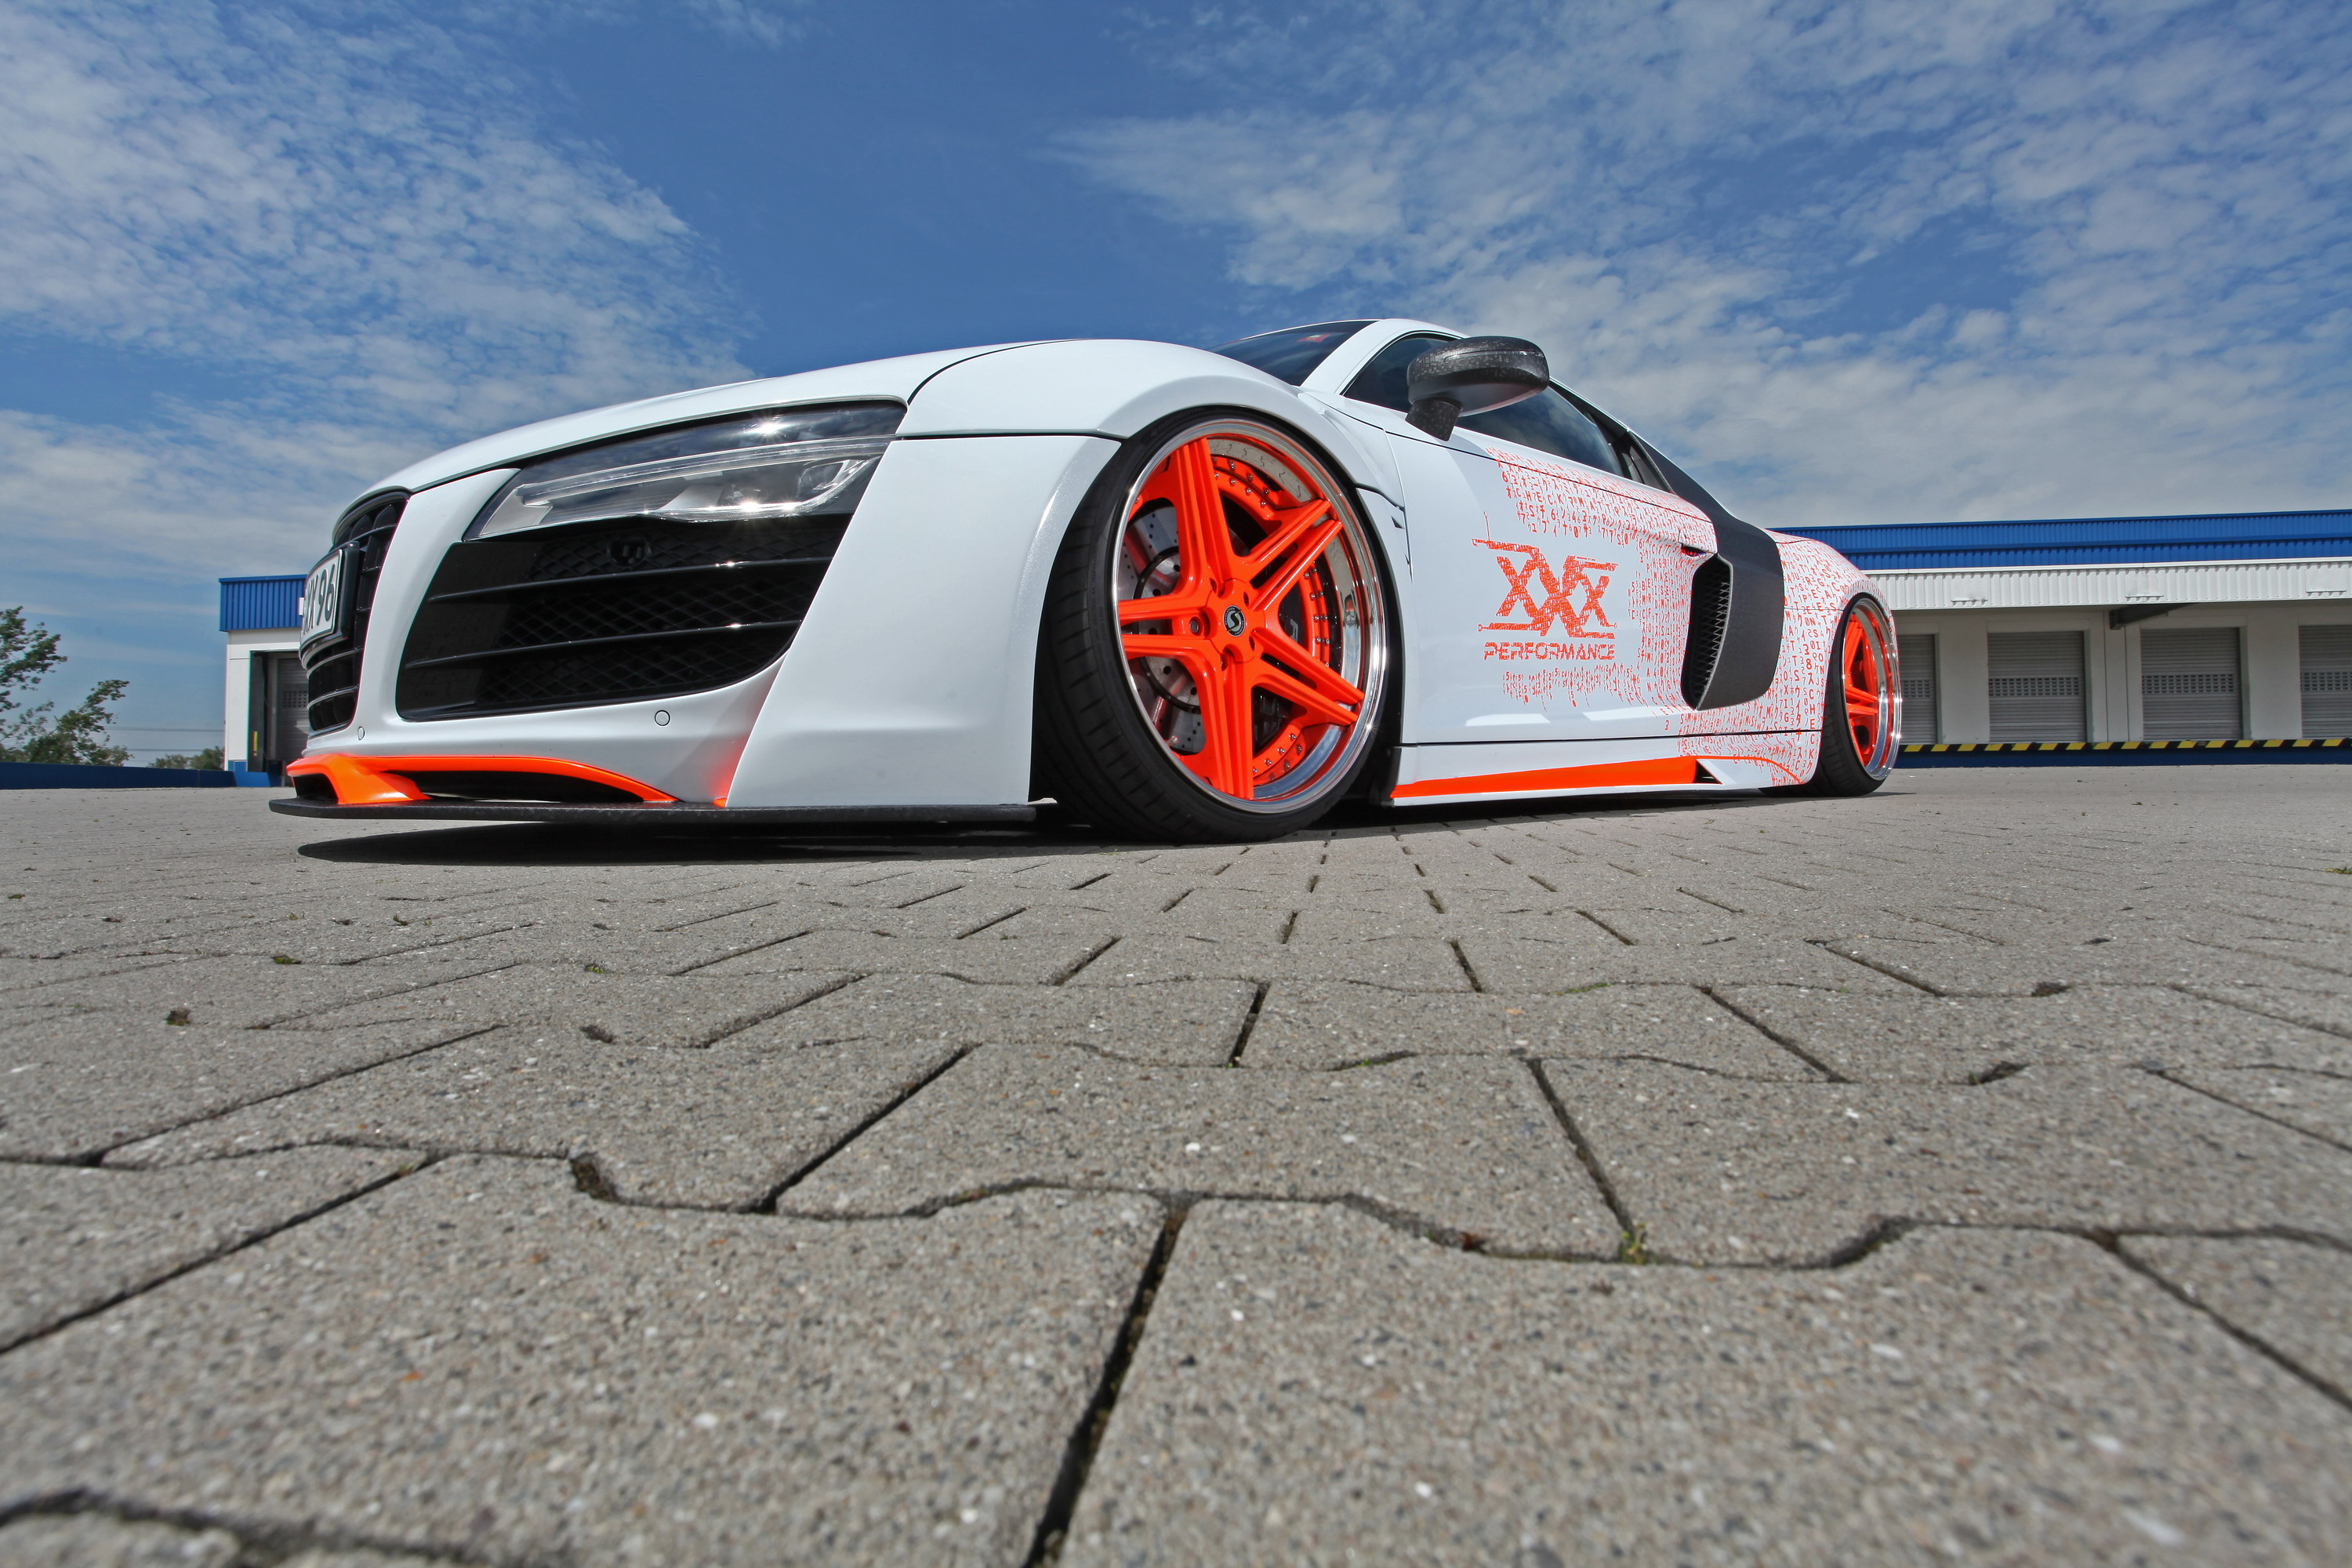 2014 Audi R8 By XXX Performance | Top Speed. »